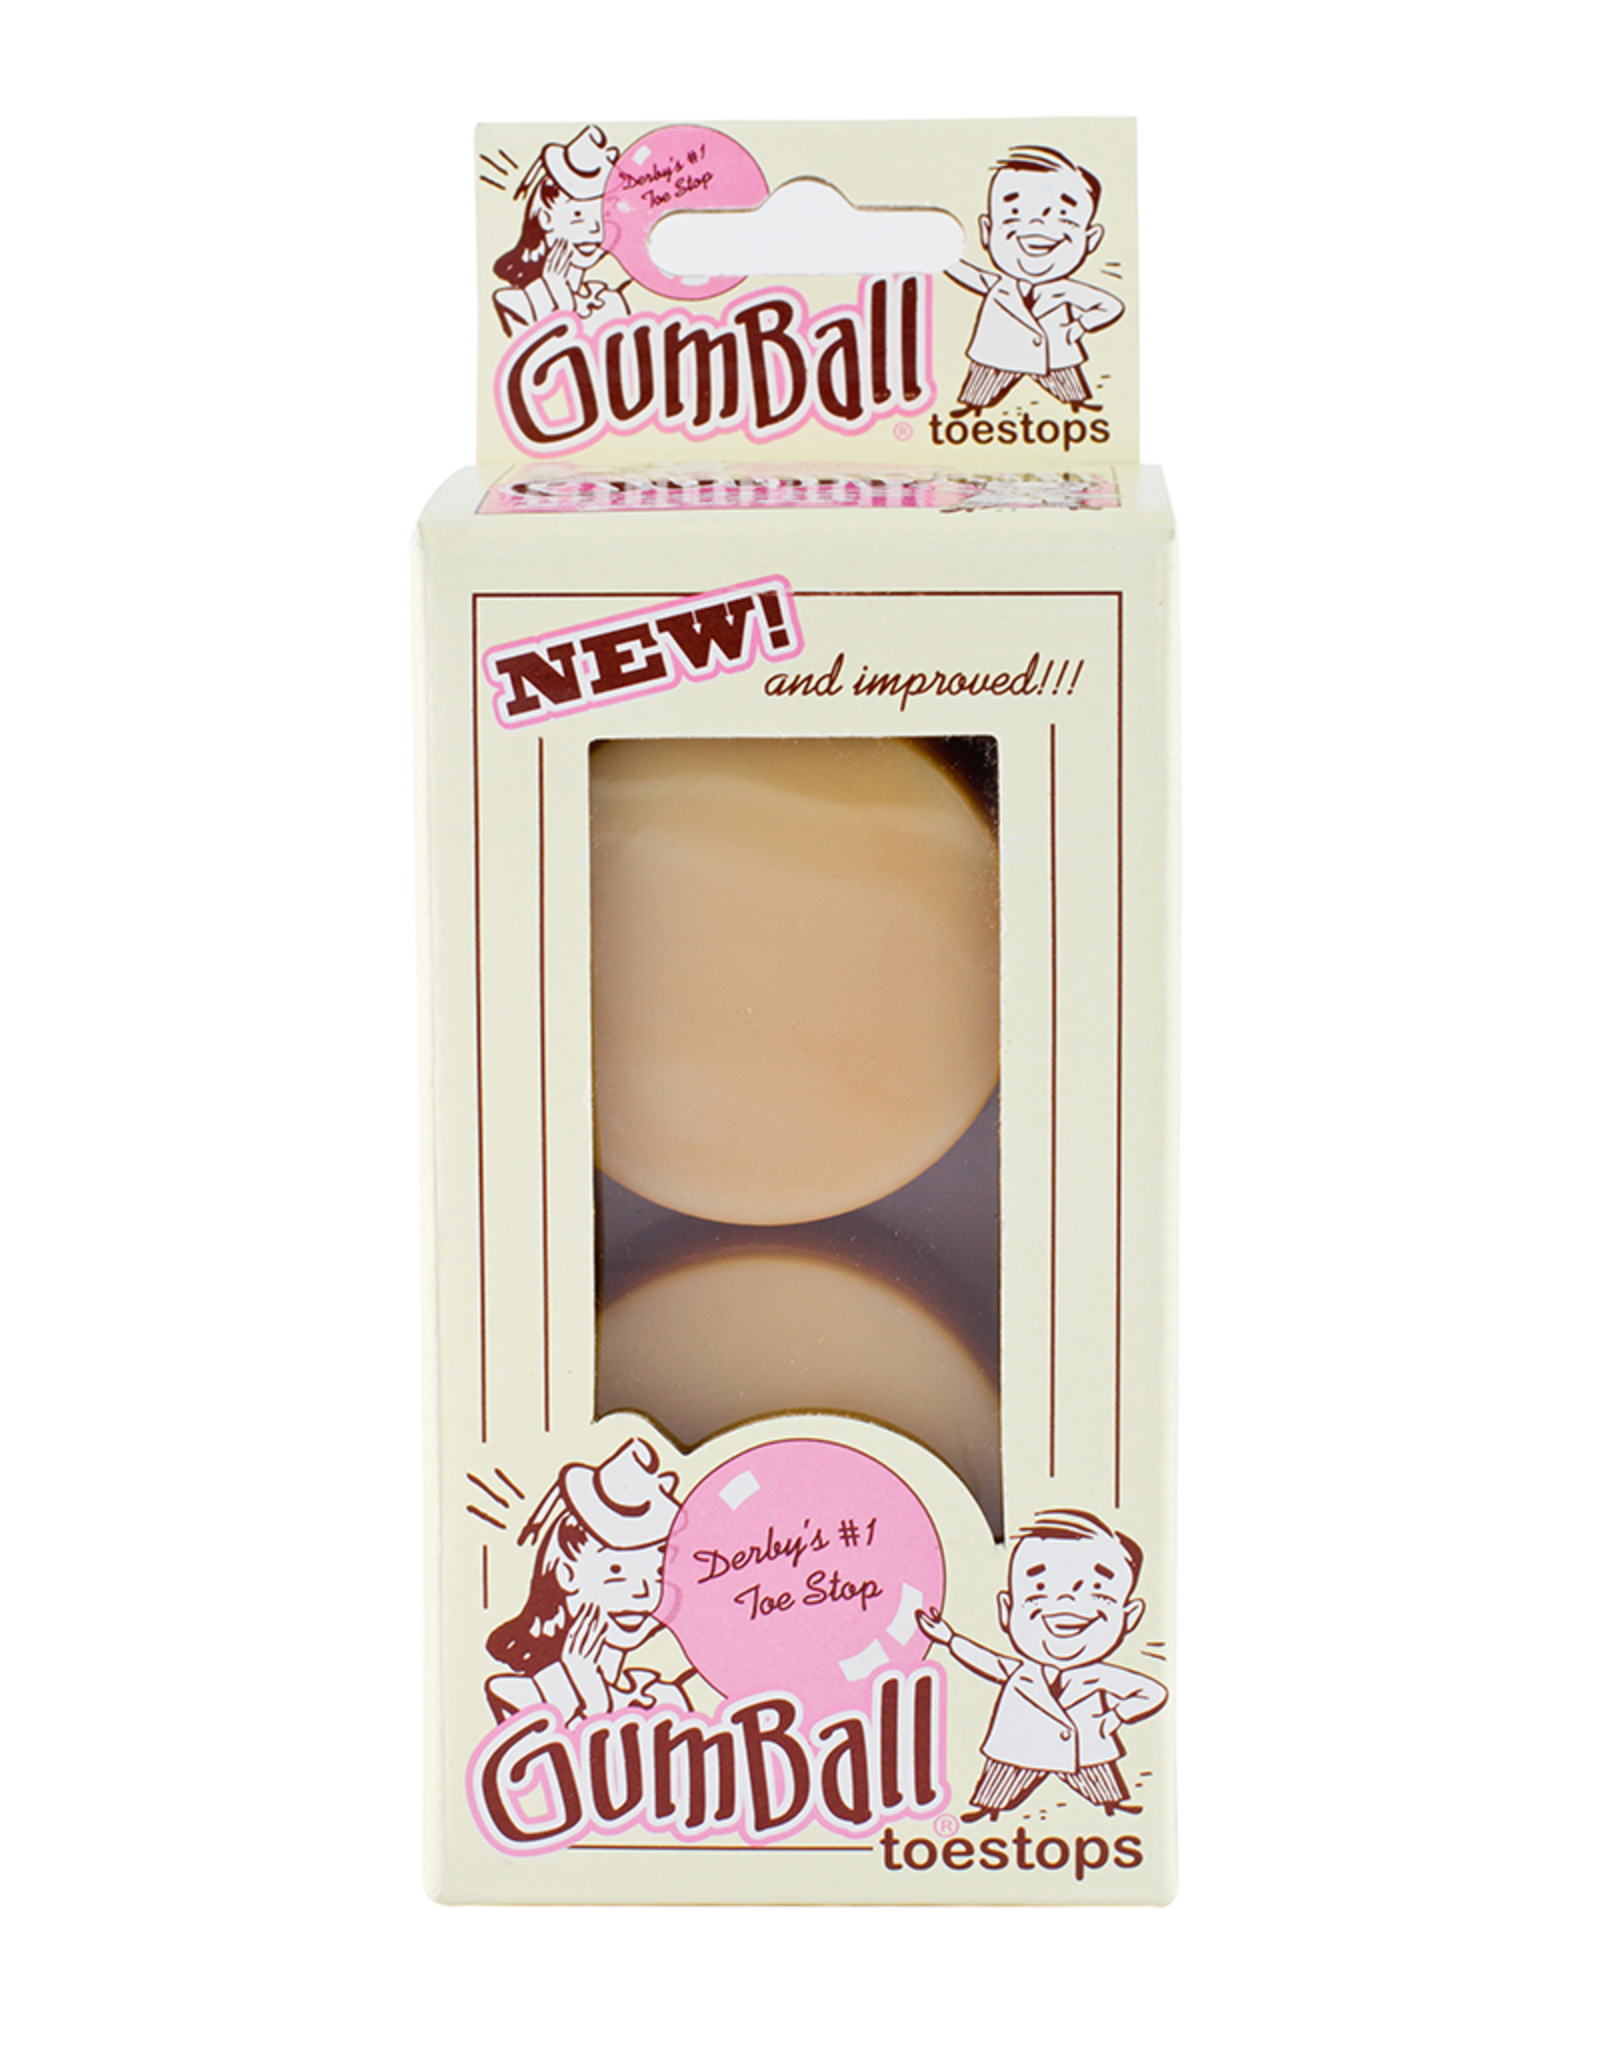 Riedell Gumball Toe Stops